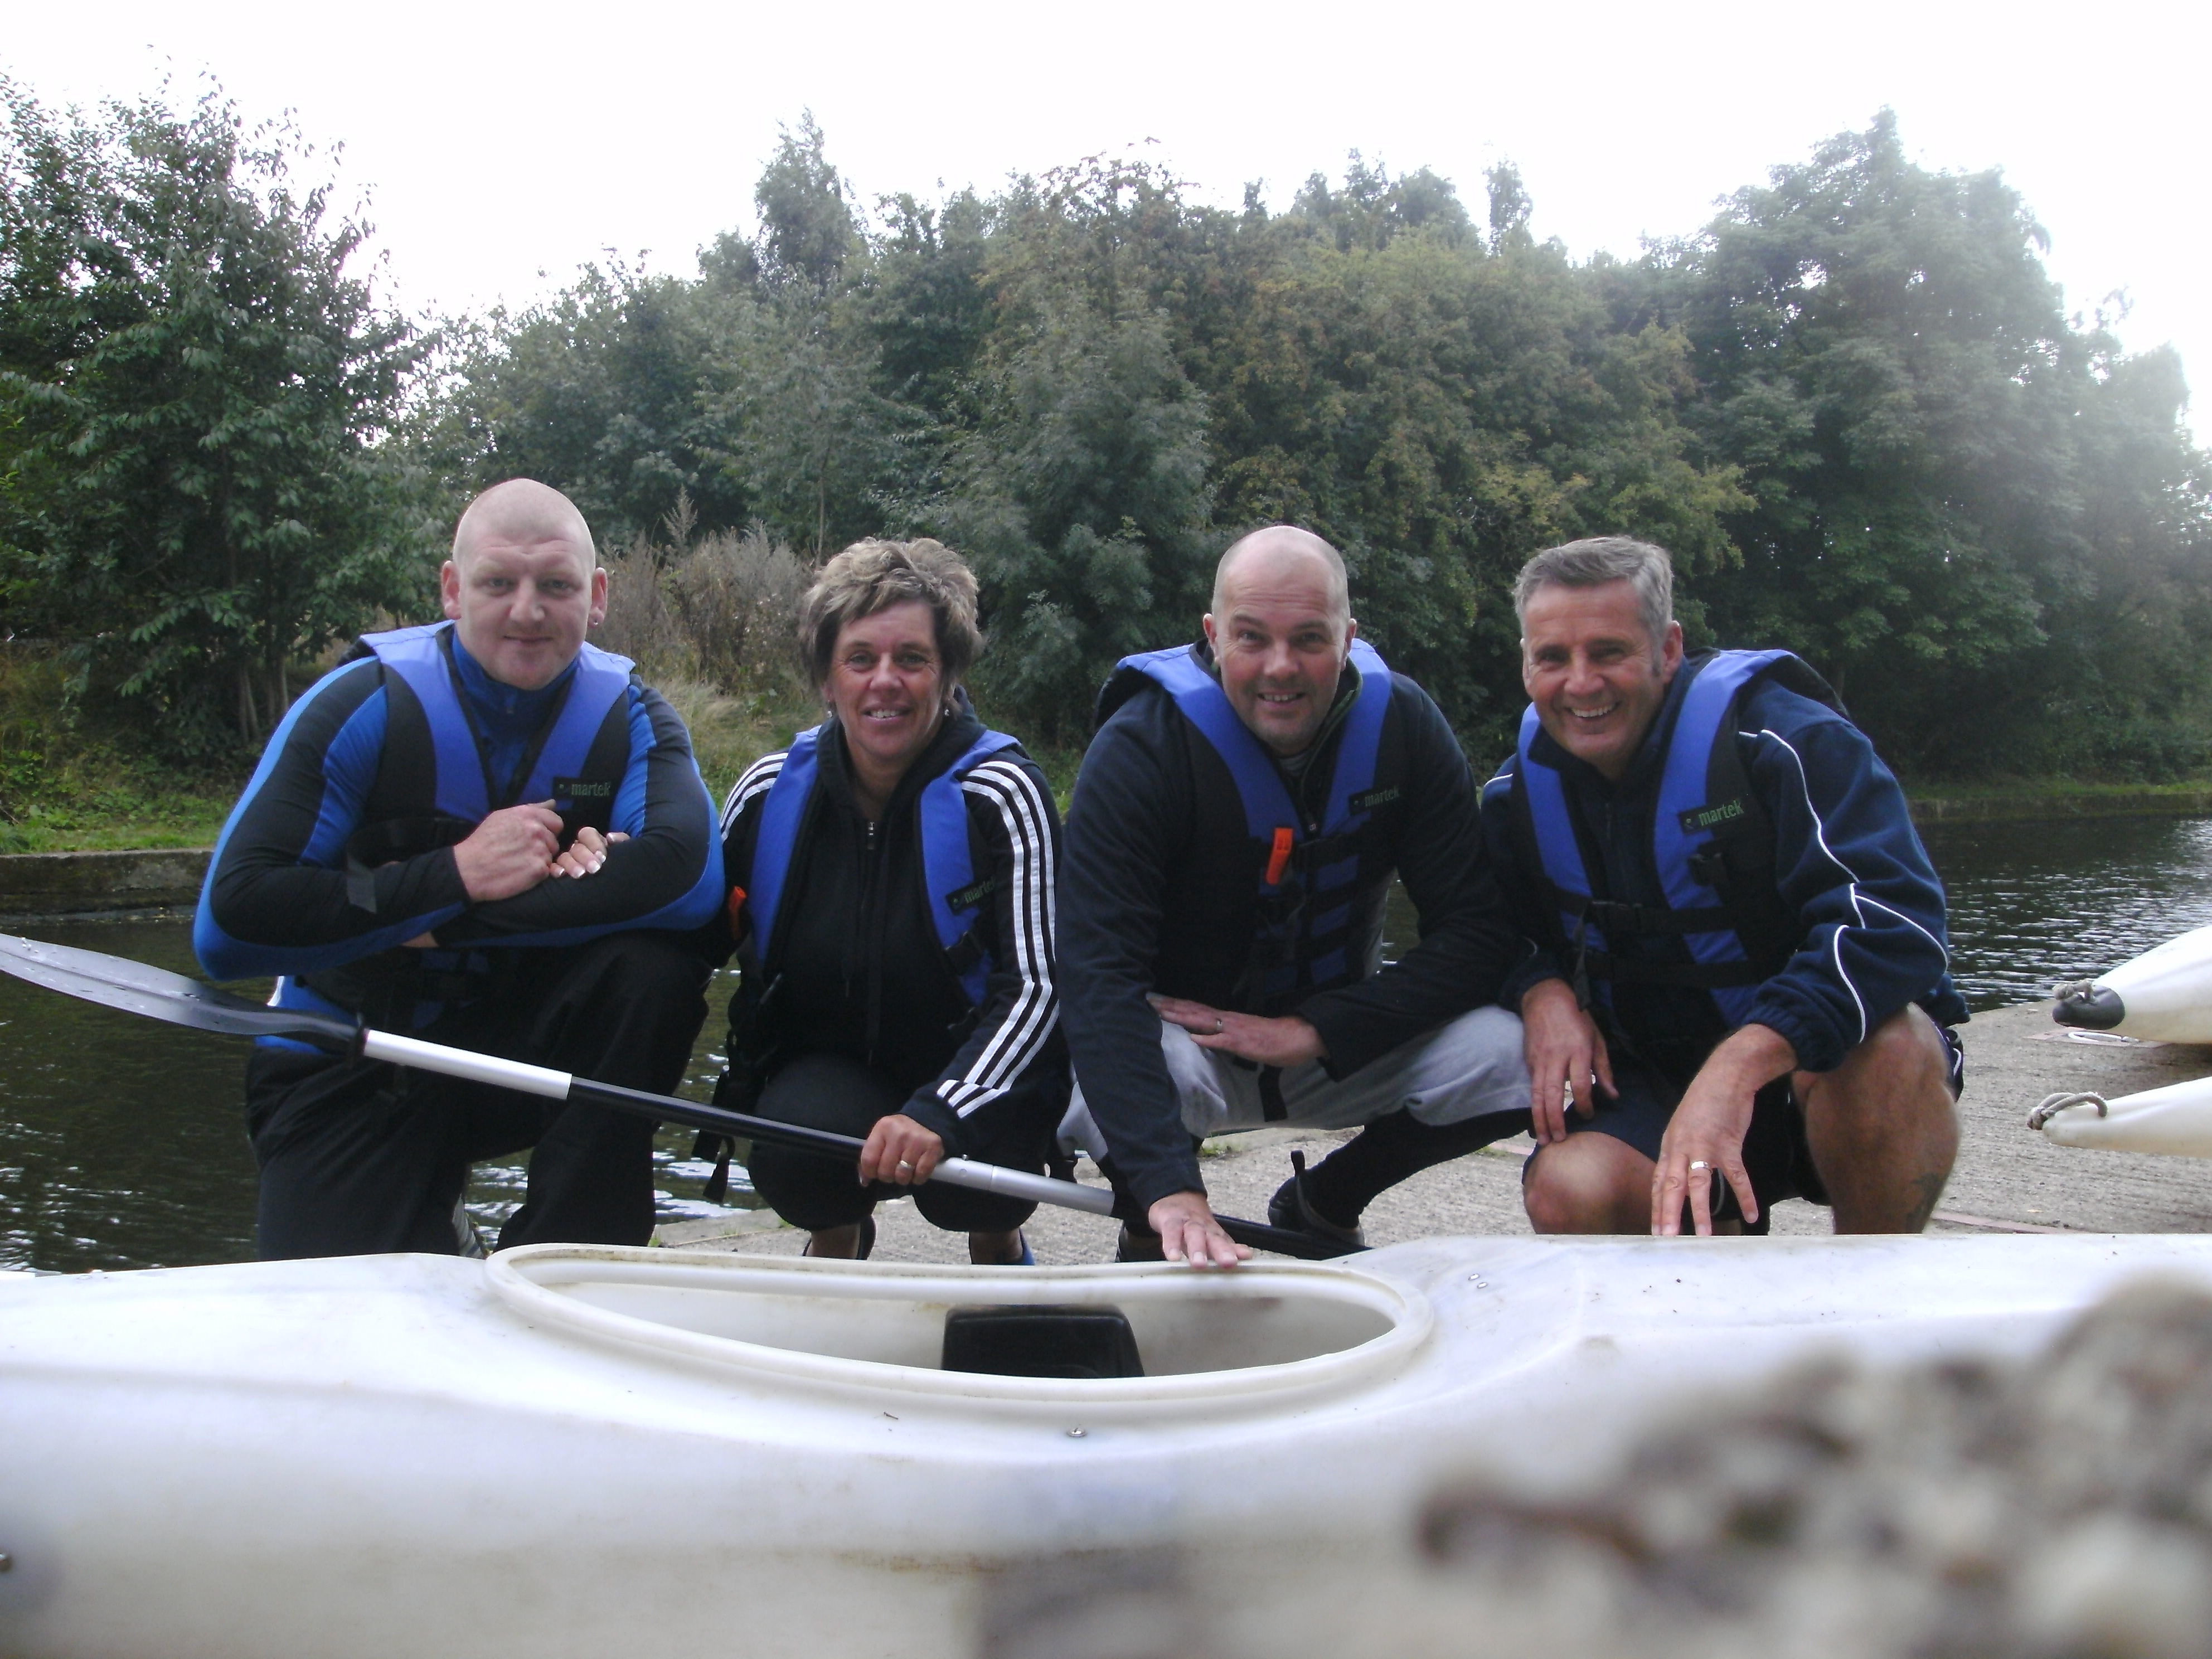 The Blakemore Foodservice Wakefield team following their 15 mile kayak challenge